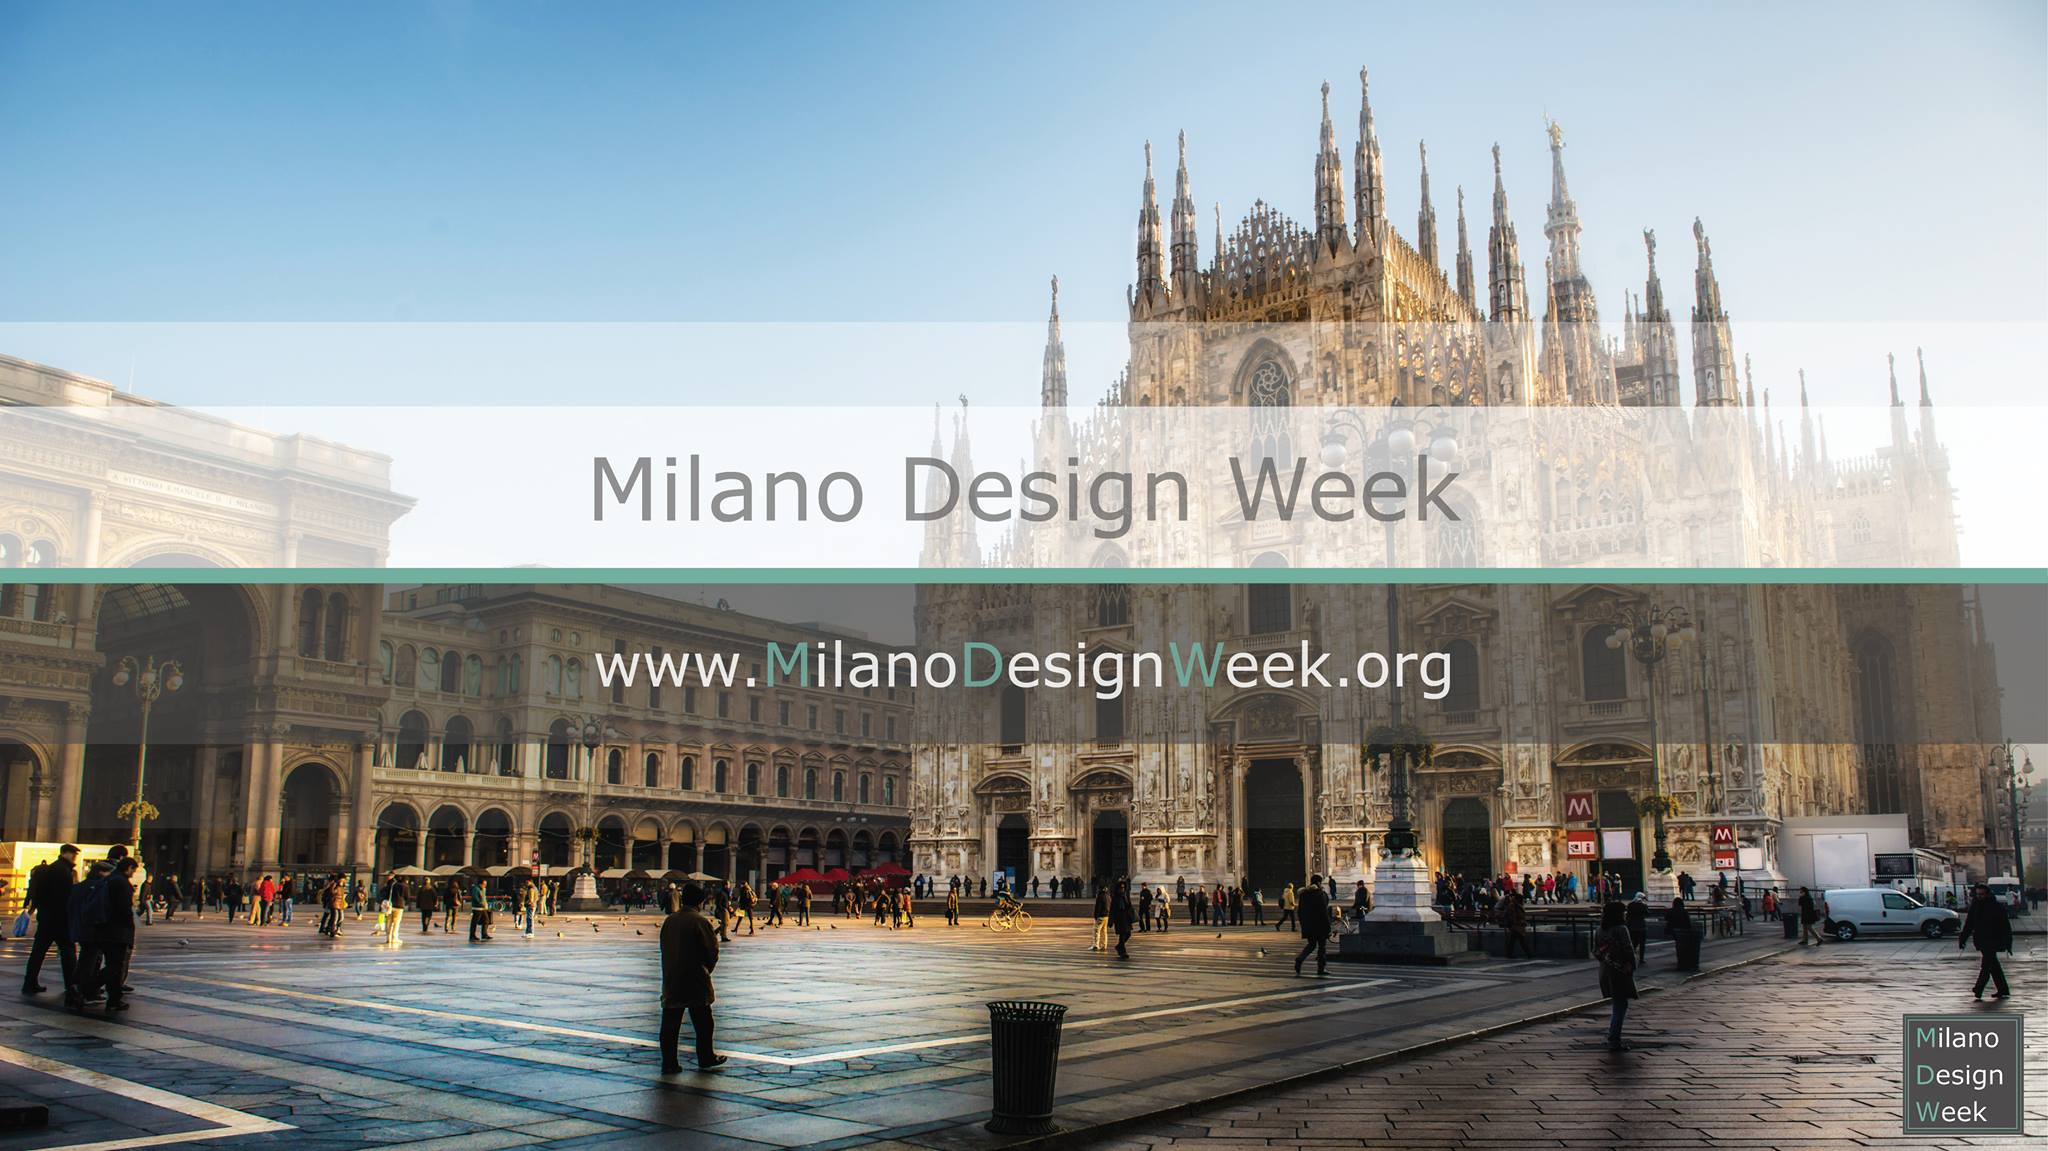 Isaloni 2016: What to see at Tortona Design Week luxury sofas A Refreshing Take on Luxury Sofas: Anguis Sofa What to see at Tortona Design Week luxury sofas A Refreshing Take on Luxury Sofas: Anguis Sofa What to see at Tortona Design Week